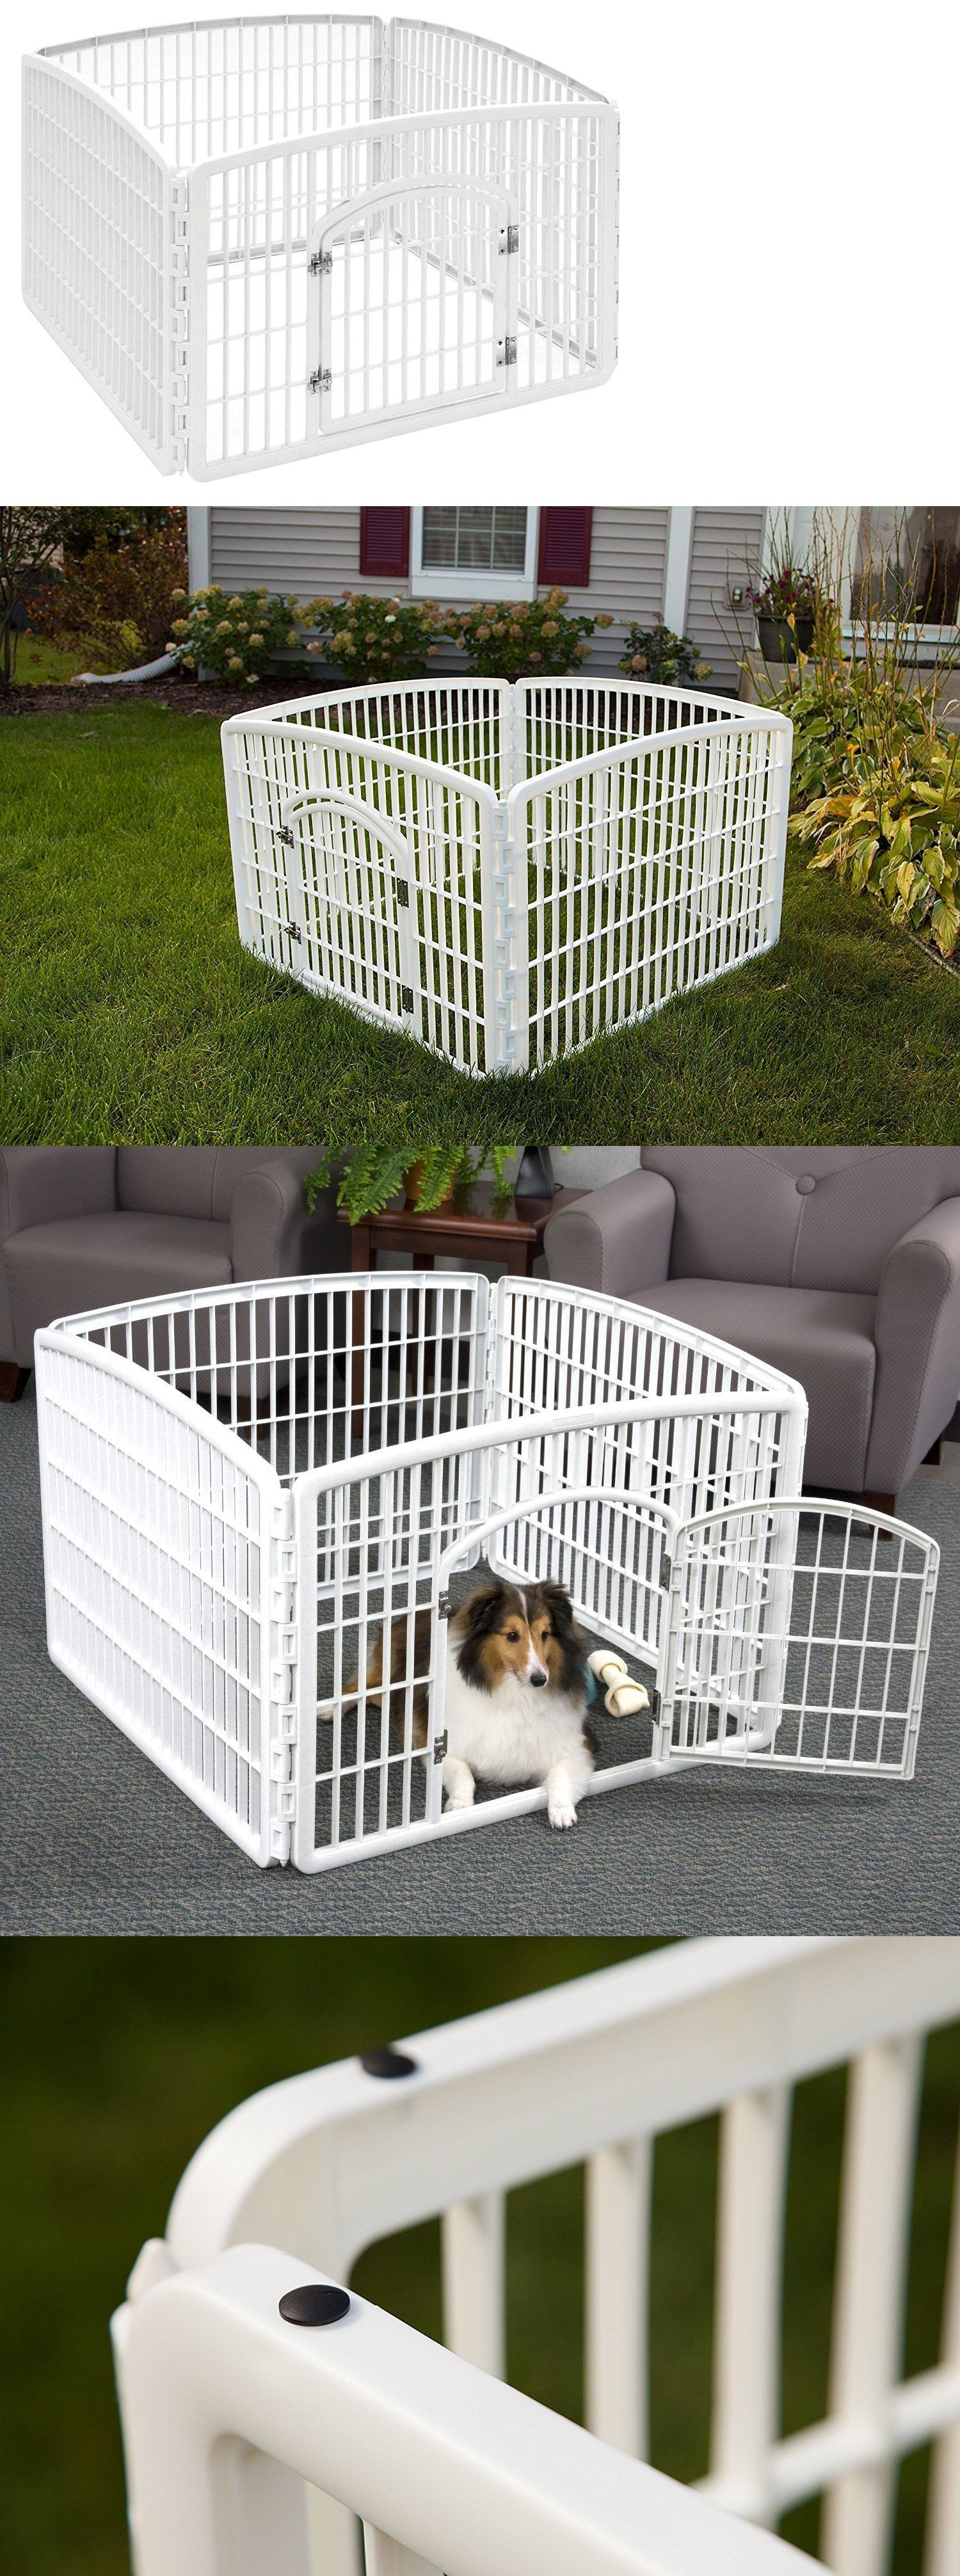 Fences And Exercise Pens 20748: Portable Exercise Playpen Pet Crate Cage Dog  Kennel Puppy Fence